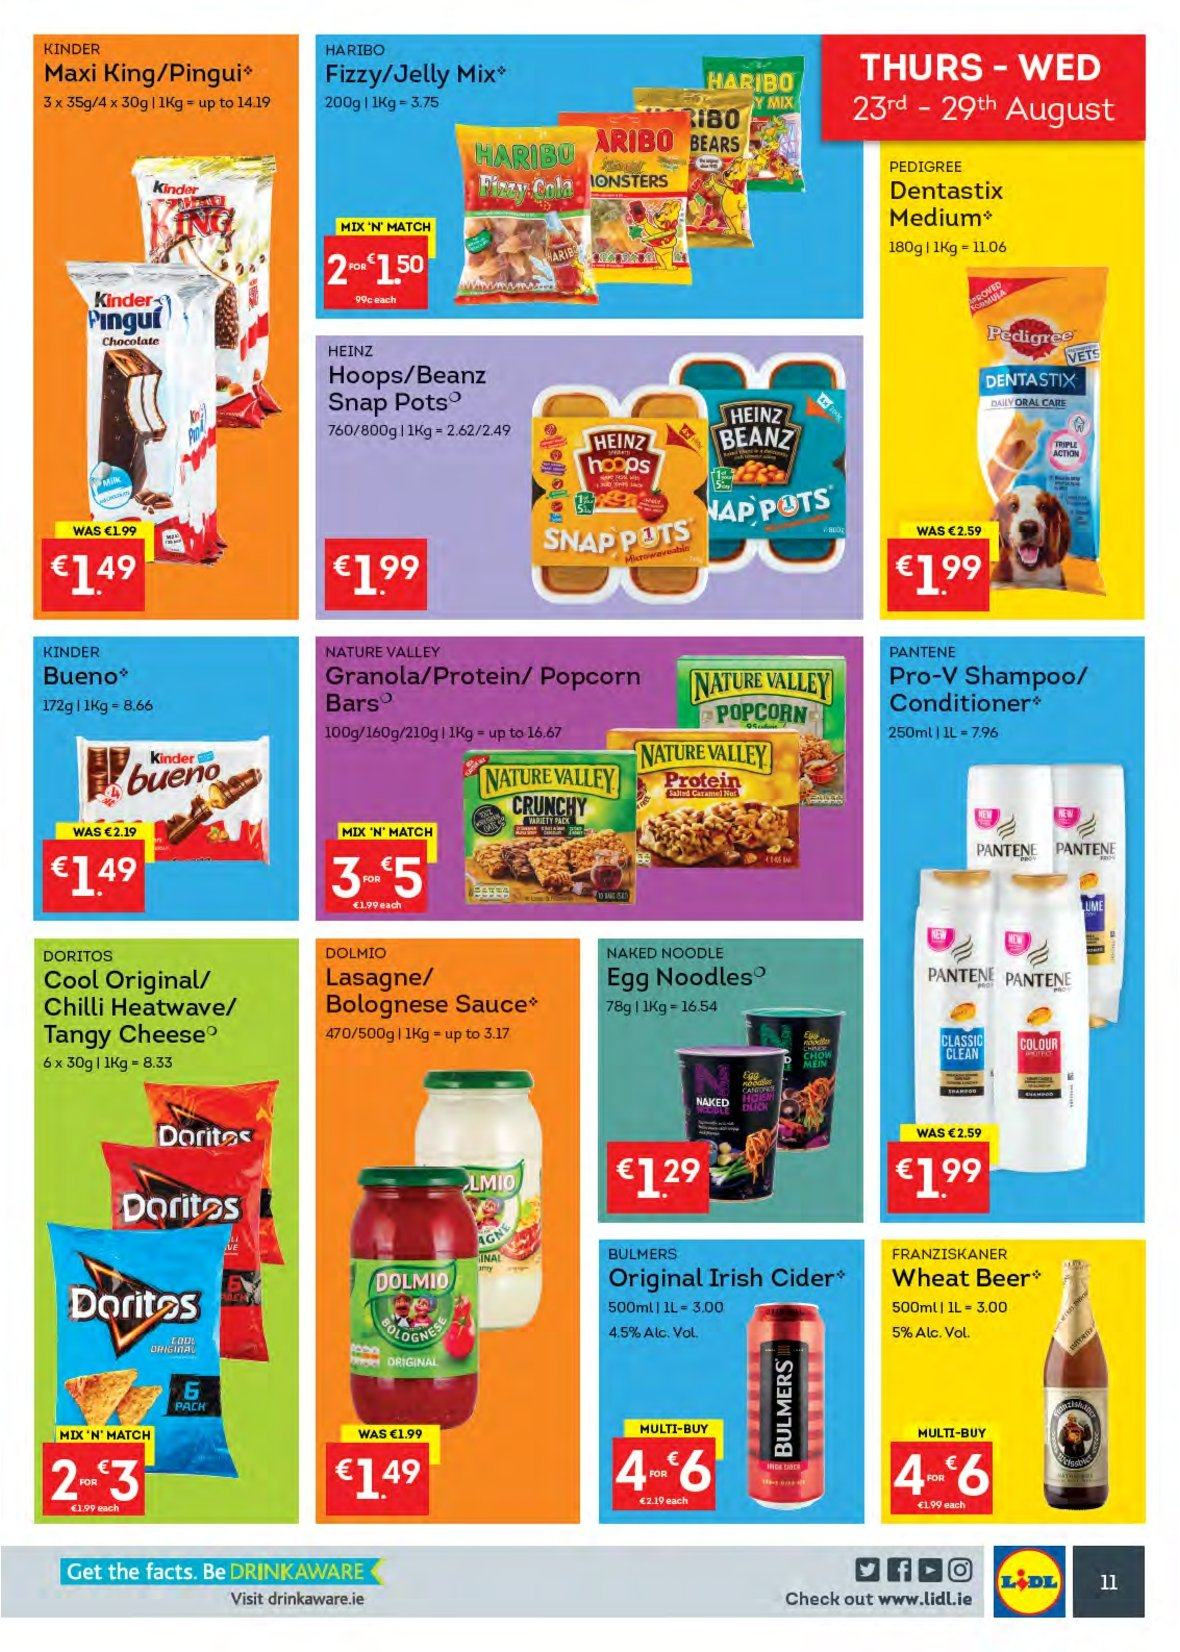 Lidl offer  - 20.8.2018 - 26.8.2018 - Sales products - sauce, cheese, jelly, eggs, Haribo, Doritos, popcorn, Heinz, bolognese sauce, granola, Nature Valley, lasagne sheets, noodles, apple cider, beer, Bulmers, conditioner, Pantene, Dentastix, Pedigree. Page 11.